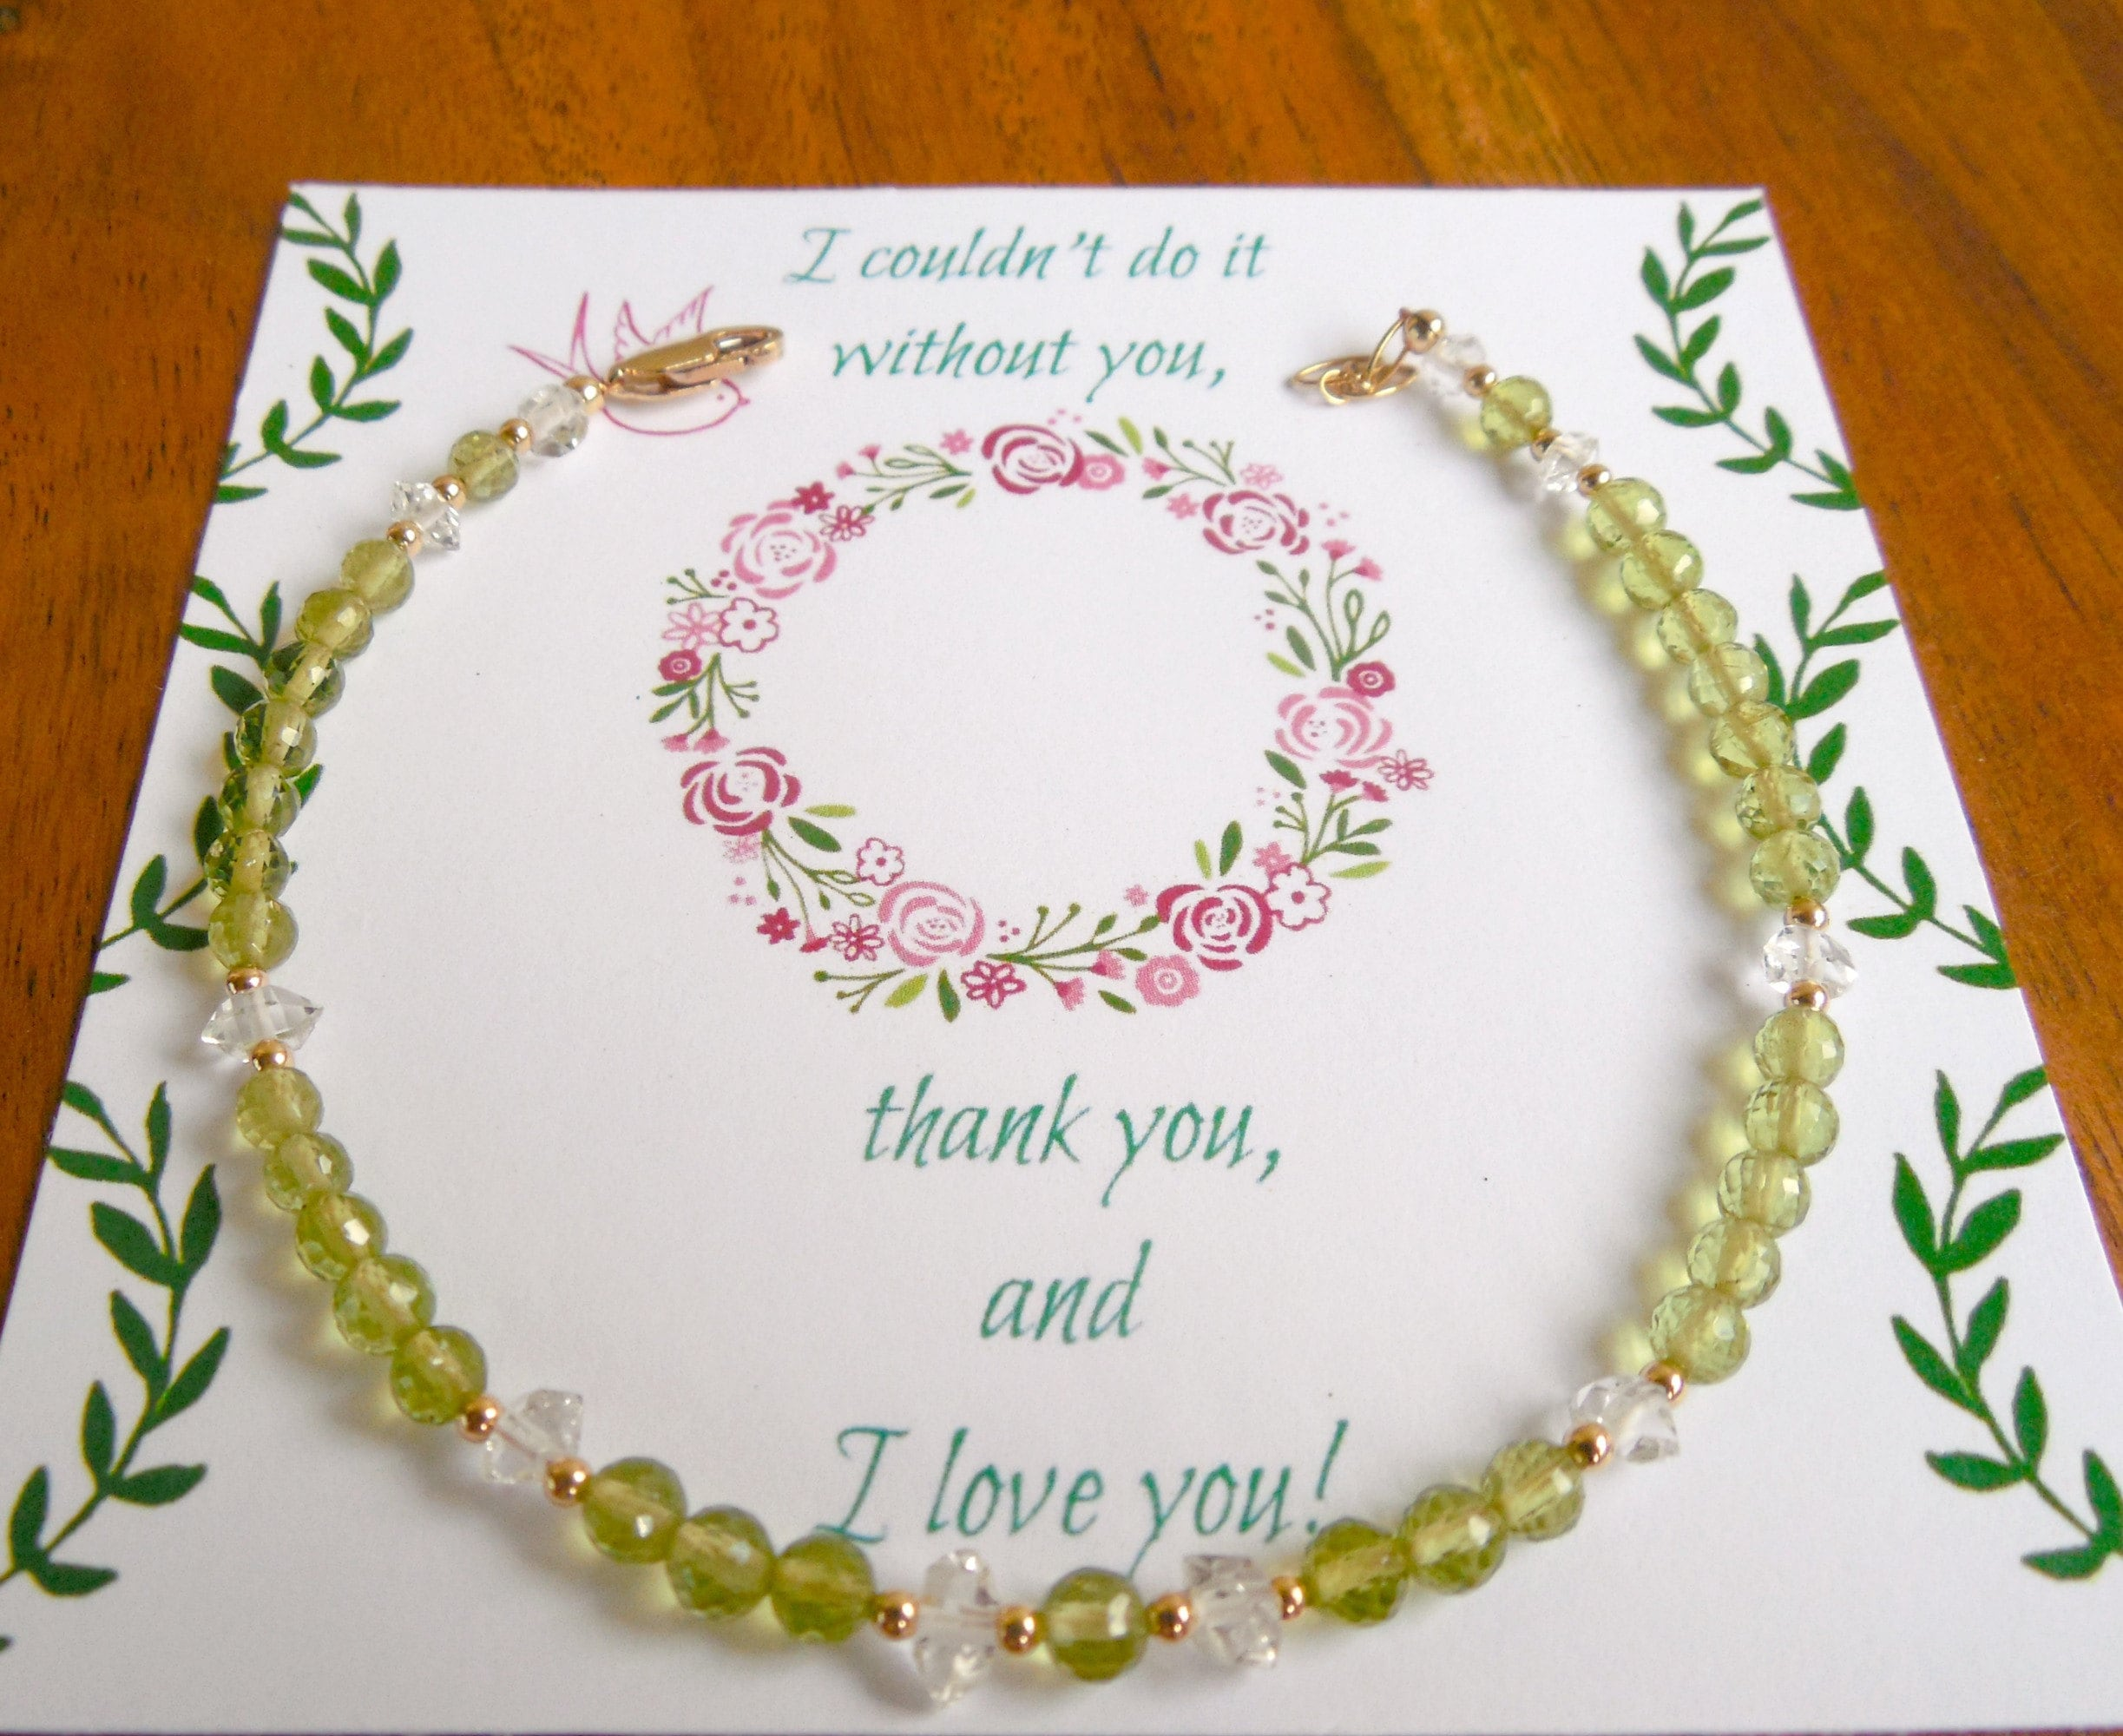 Peridot bracelet, perfect bridesmaid thank you gifts.